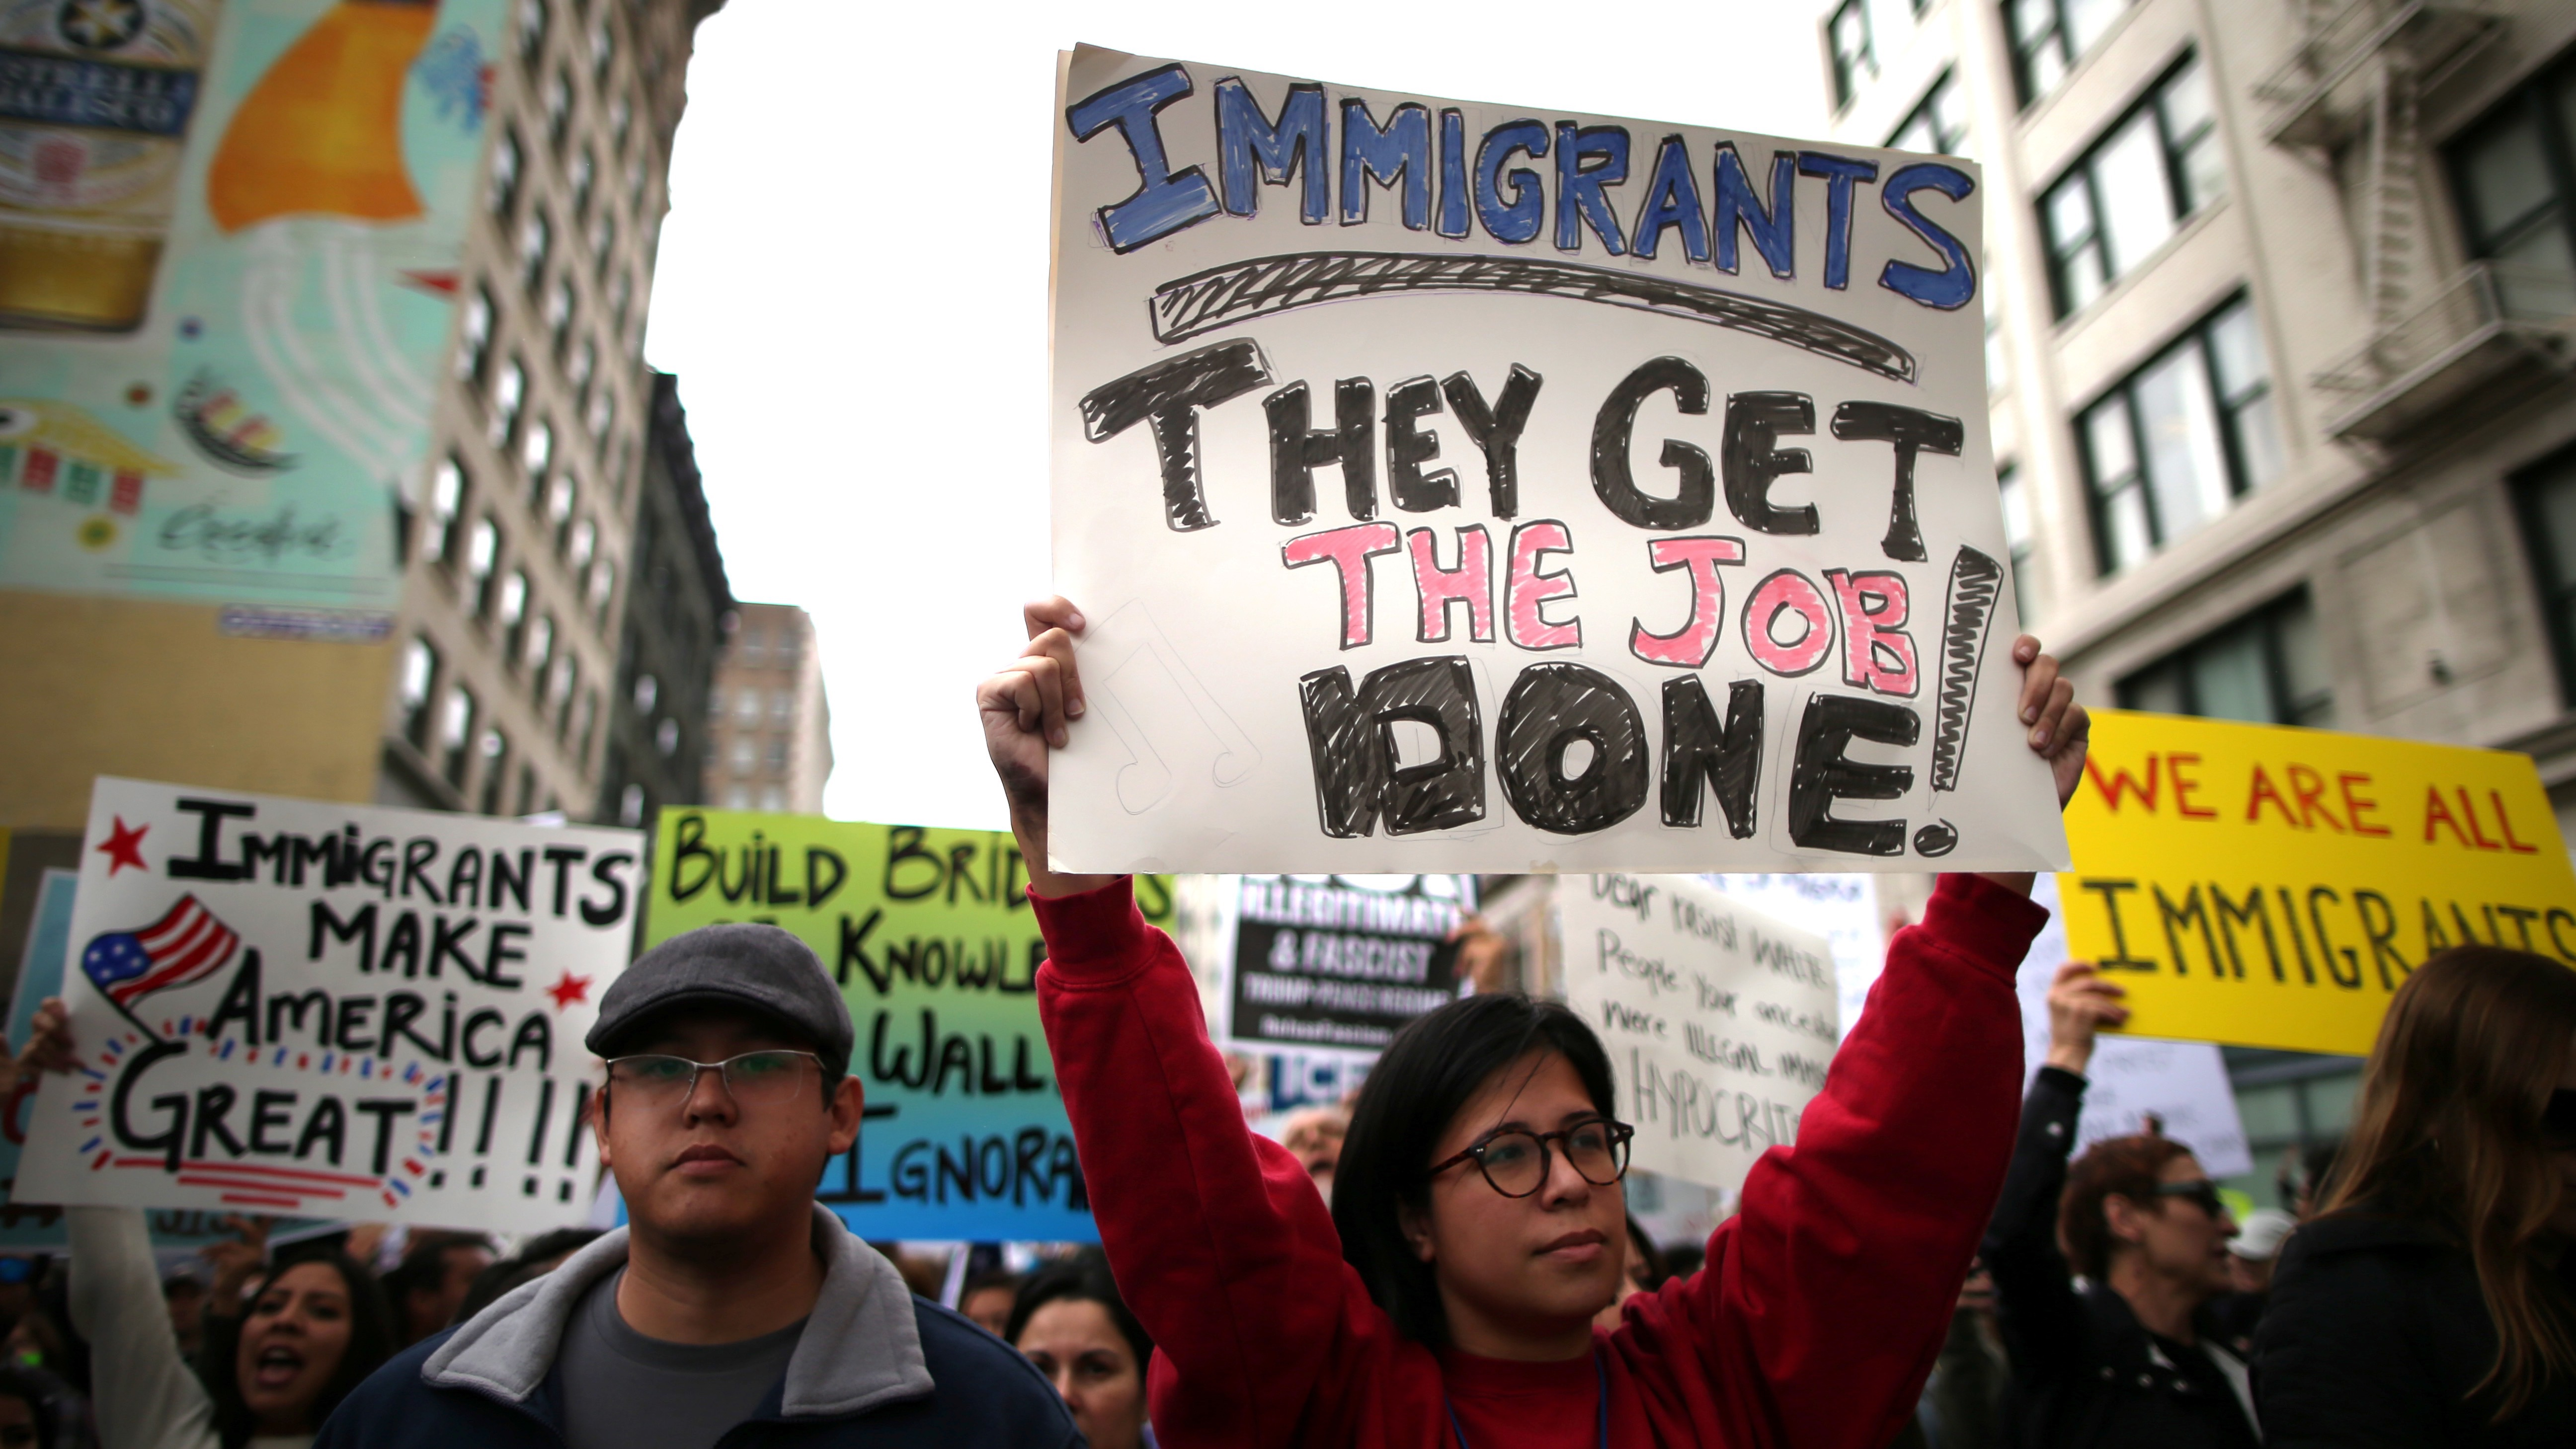 People participate in a protest march calling for human rights and dignity for immigrants, in Los Angeles, February 18, 2017. REUTERS/Lucy Nicholson - RTSZBH0